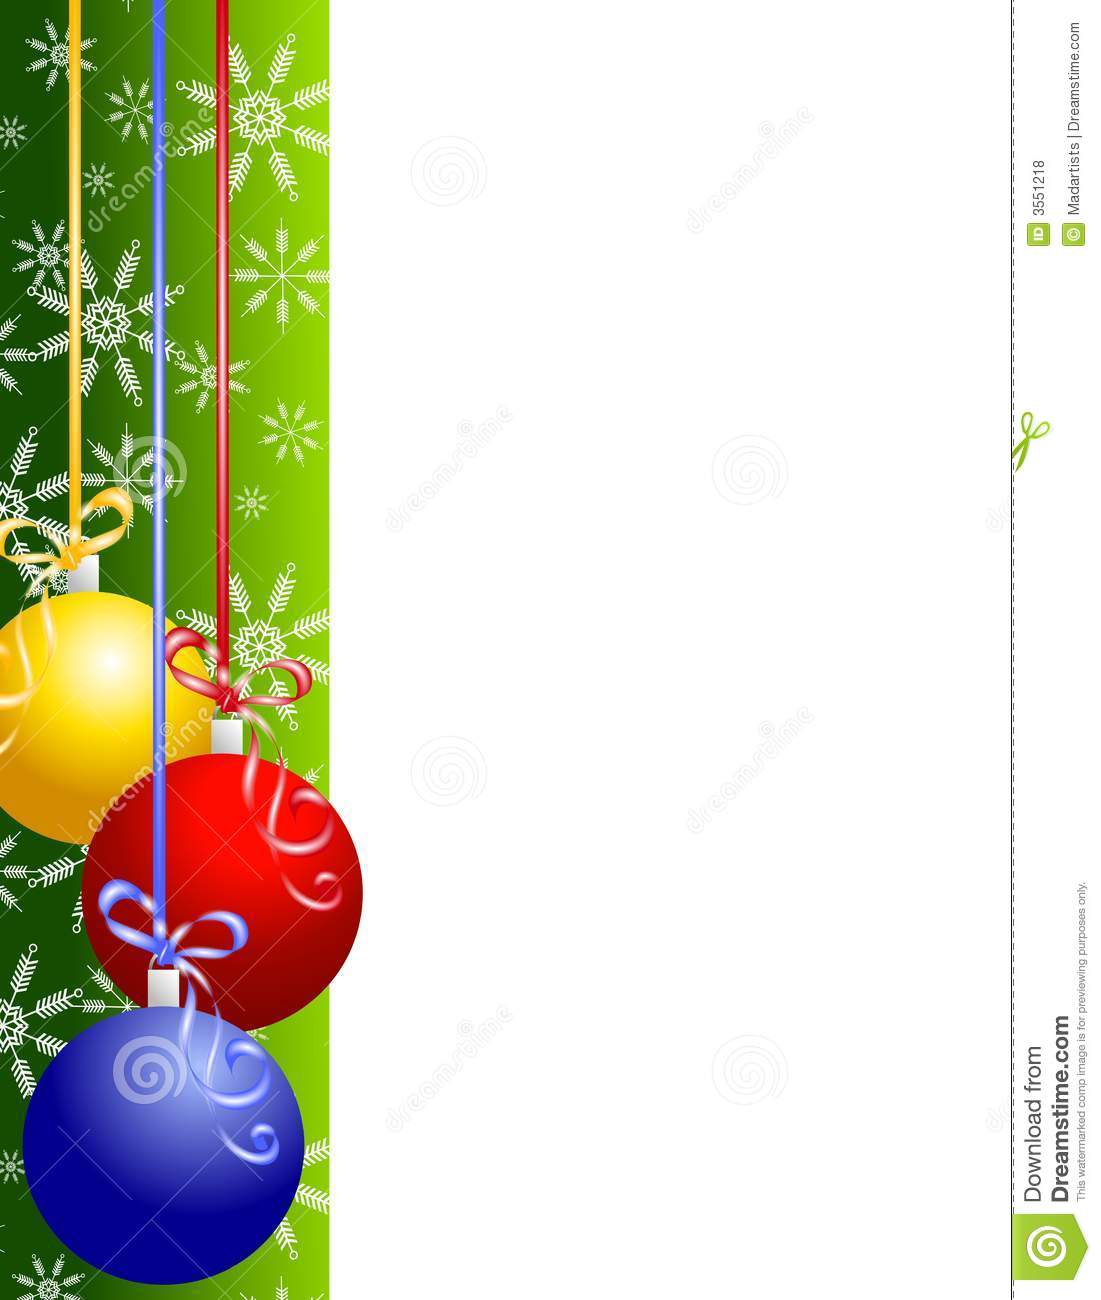 Clipart christmas border microsoft png black and white Microsoft Word Christmas Borders | Free download best Microsoft Word ... png black and white